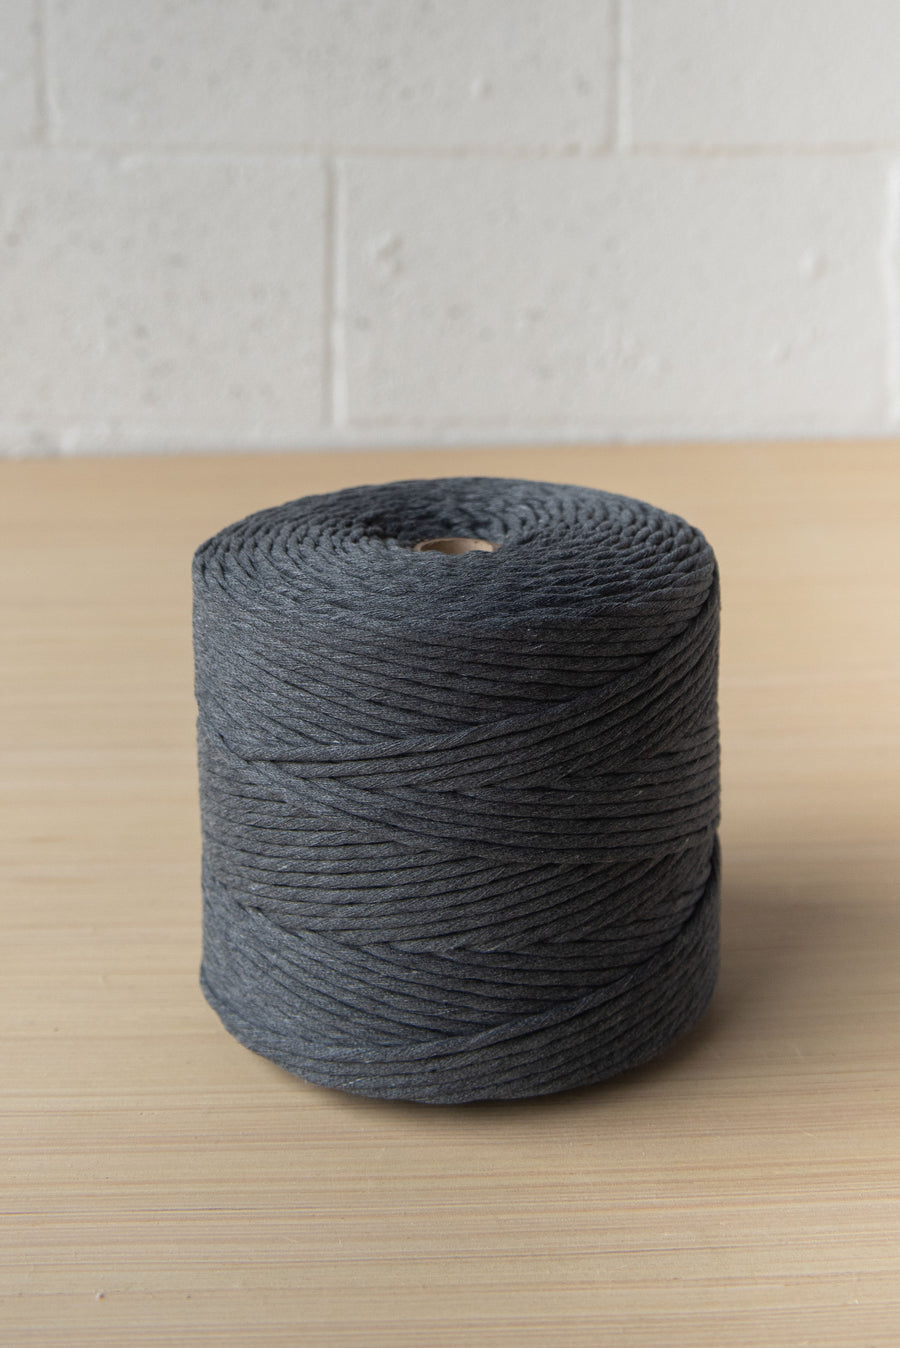 SOFT COTTON CORD ZERO WASTE 4 MM - 1 SINGLE STRAND - CHARCOAL GRAY COLOR